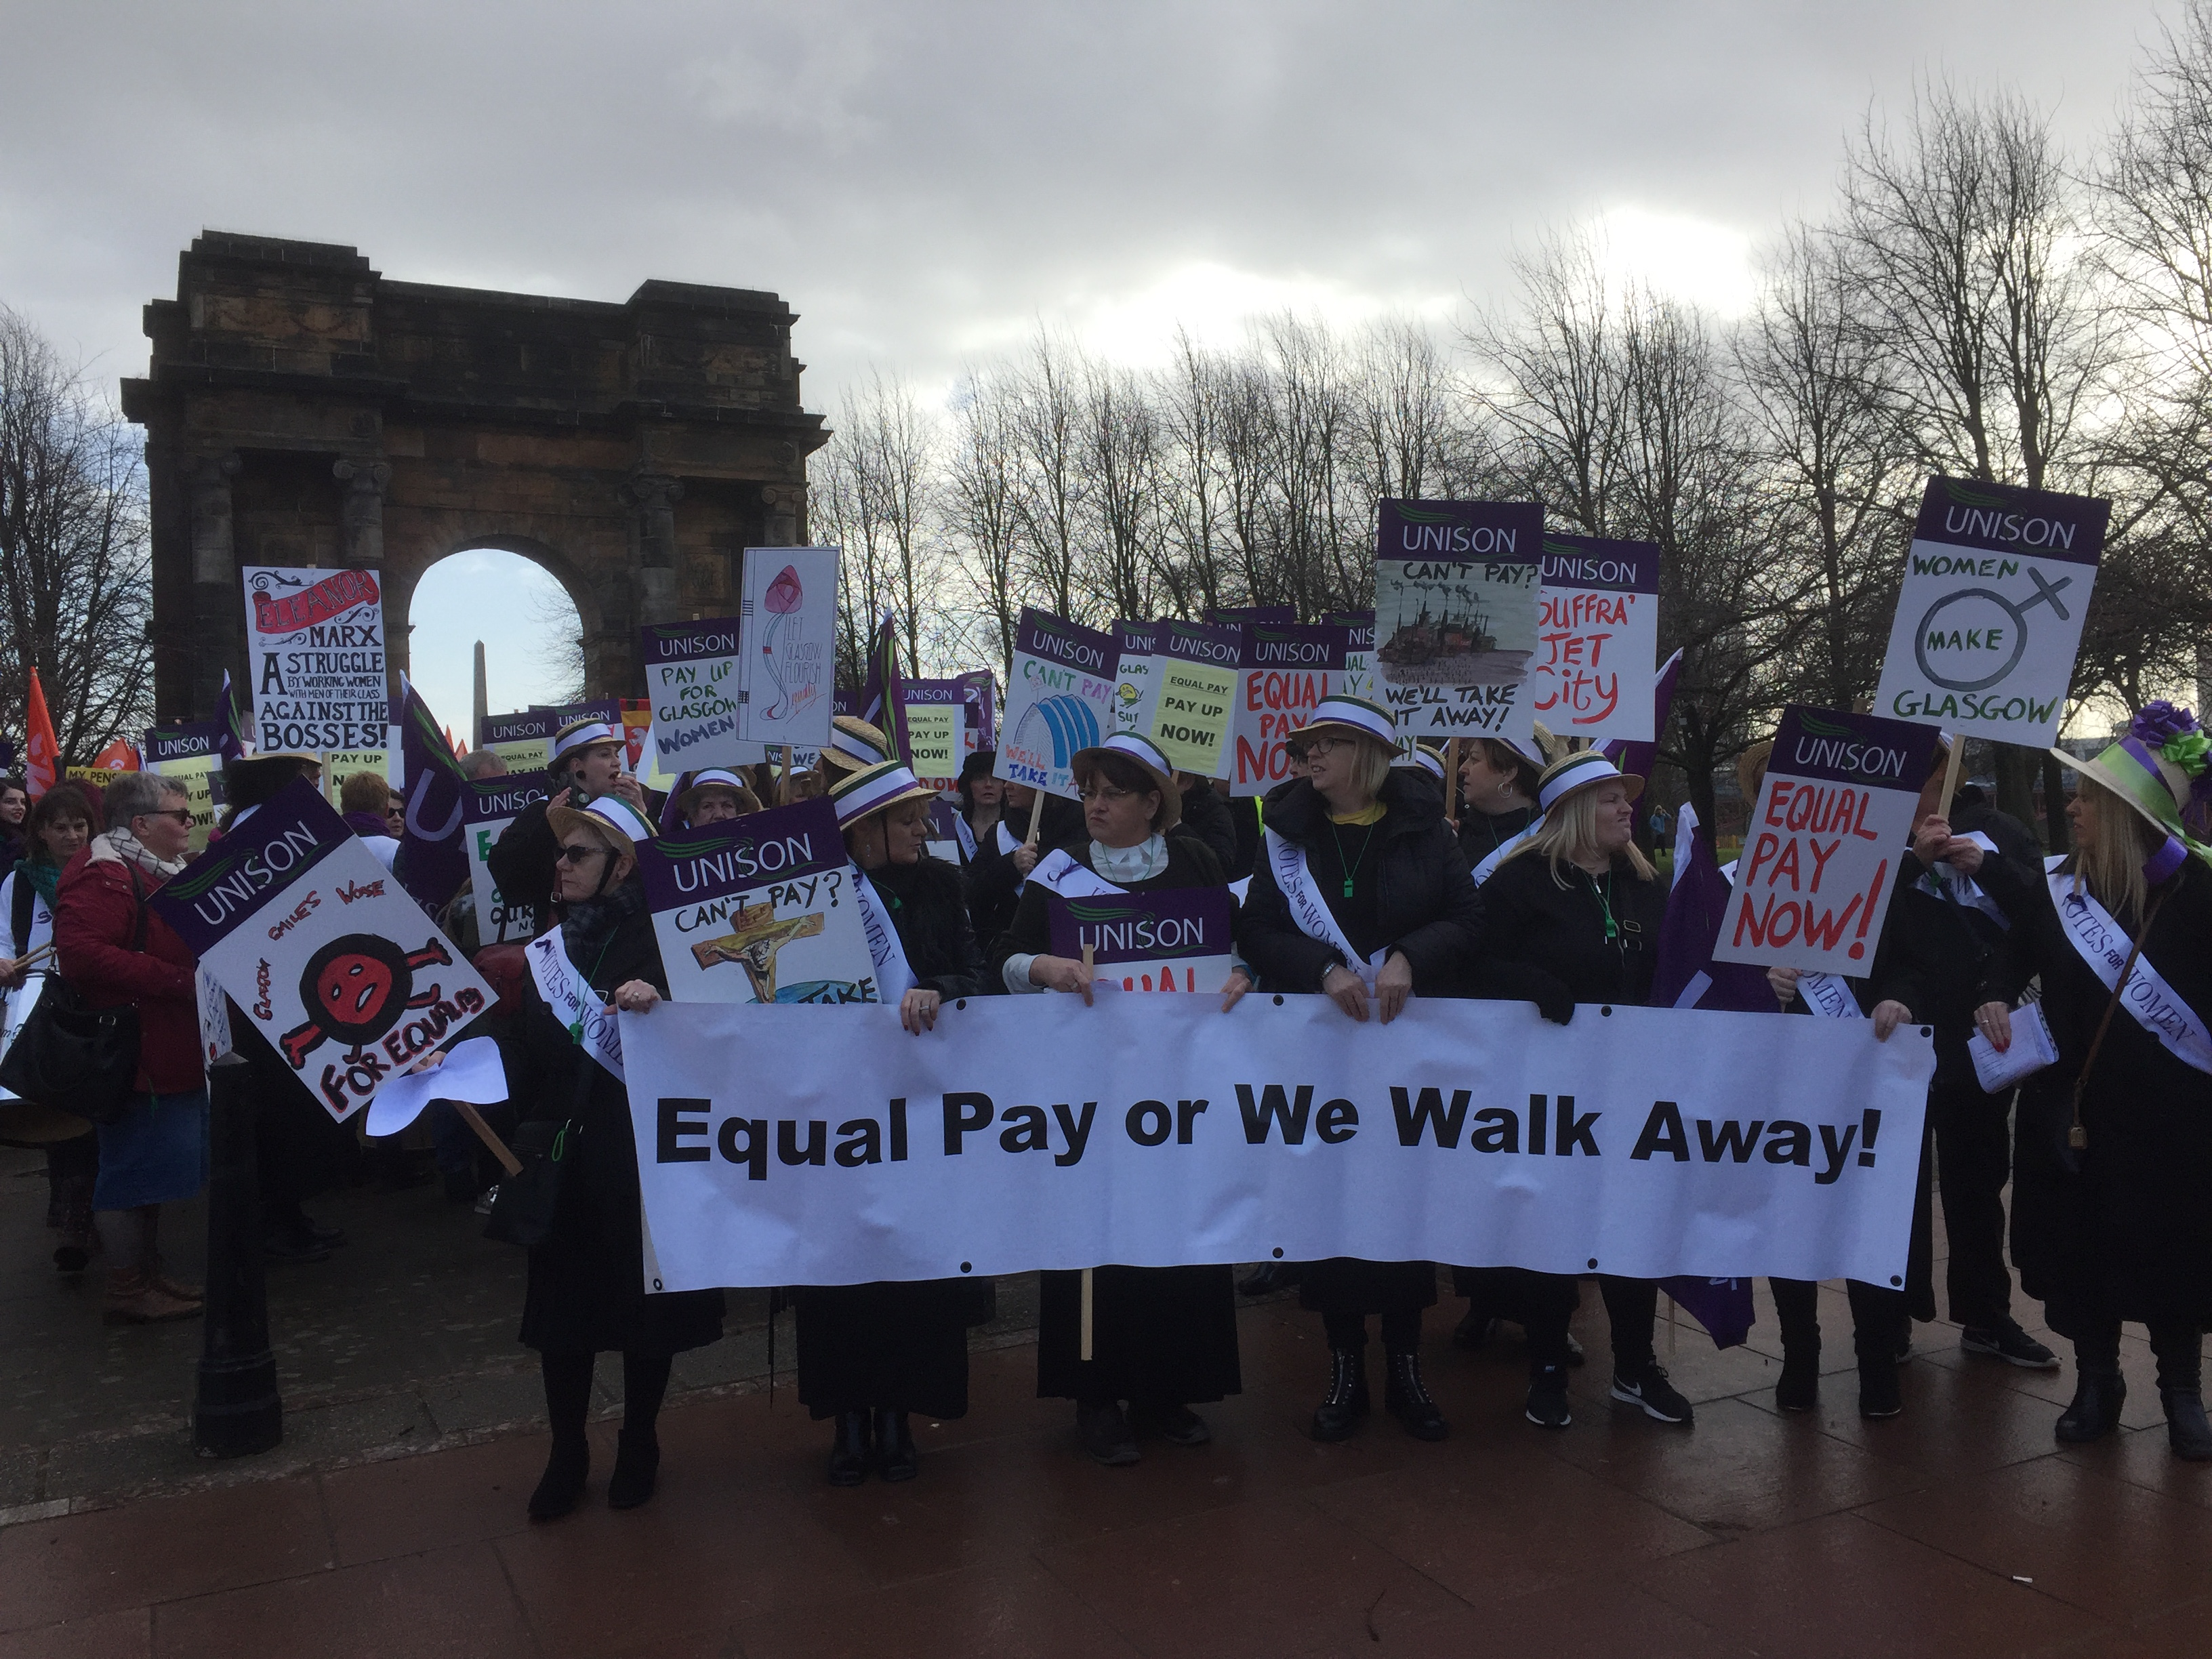 'Suffragettes' lead girls's march for equal pay in Glasgow